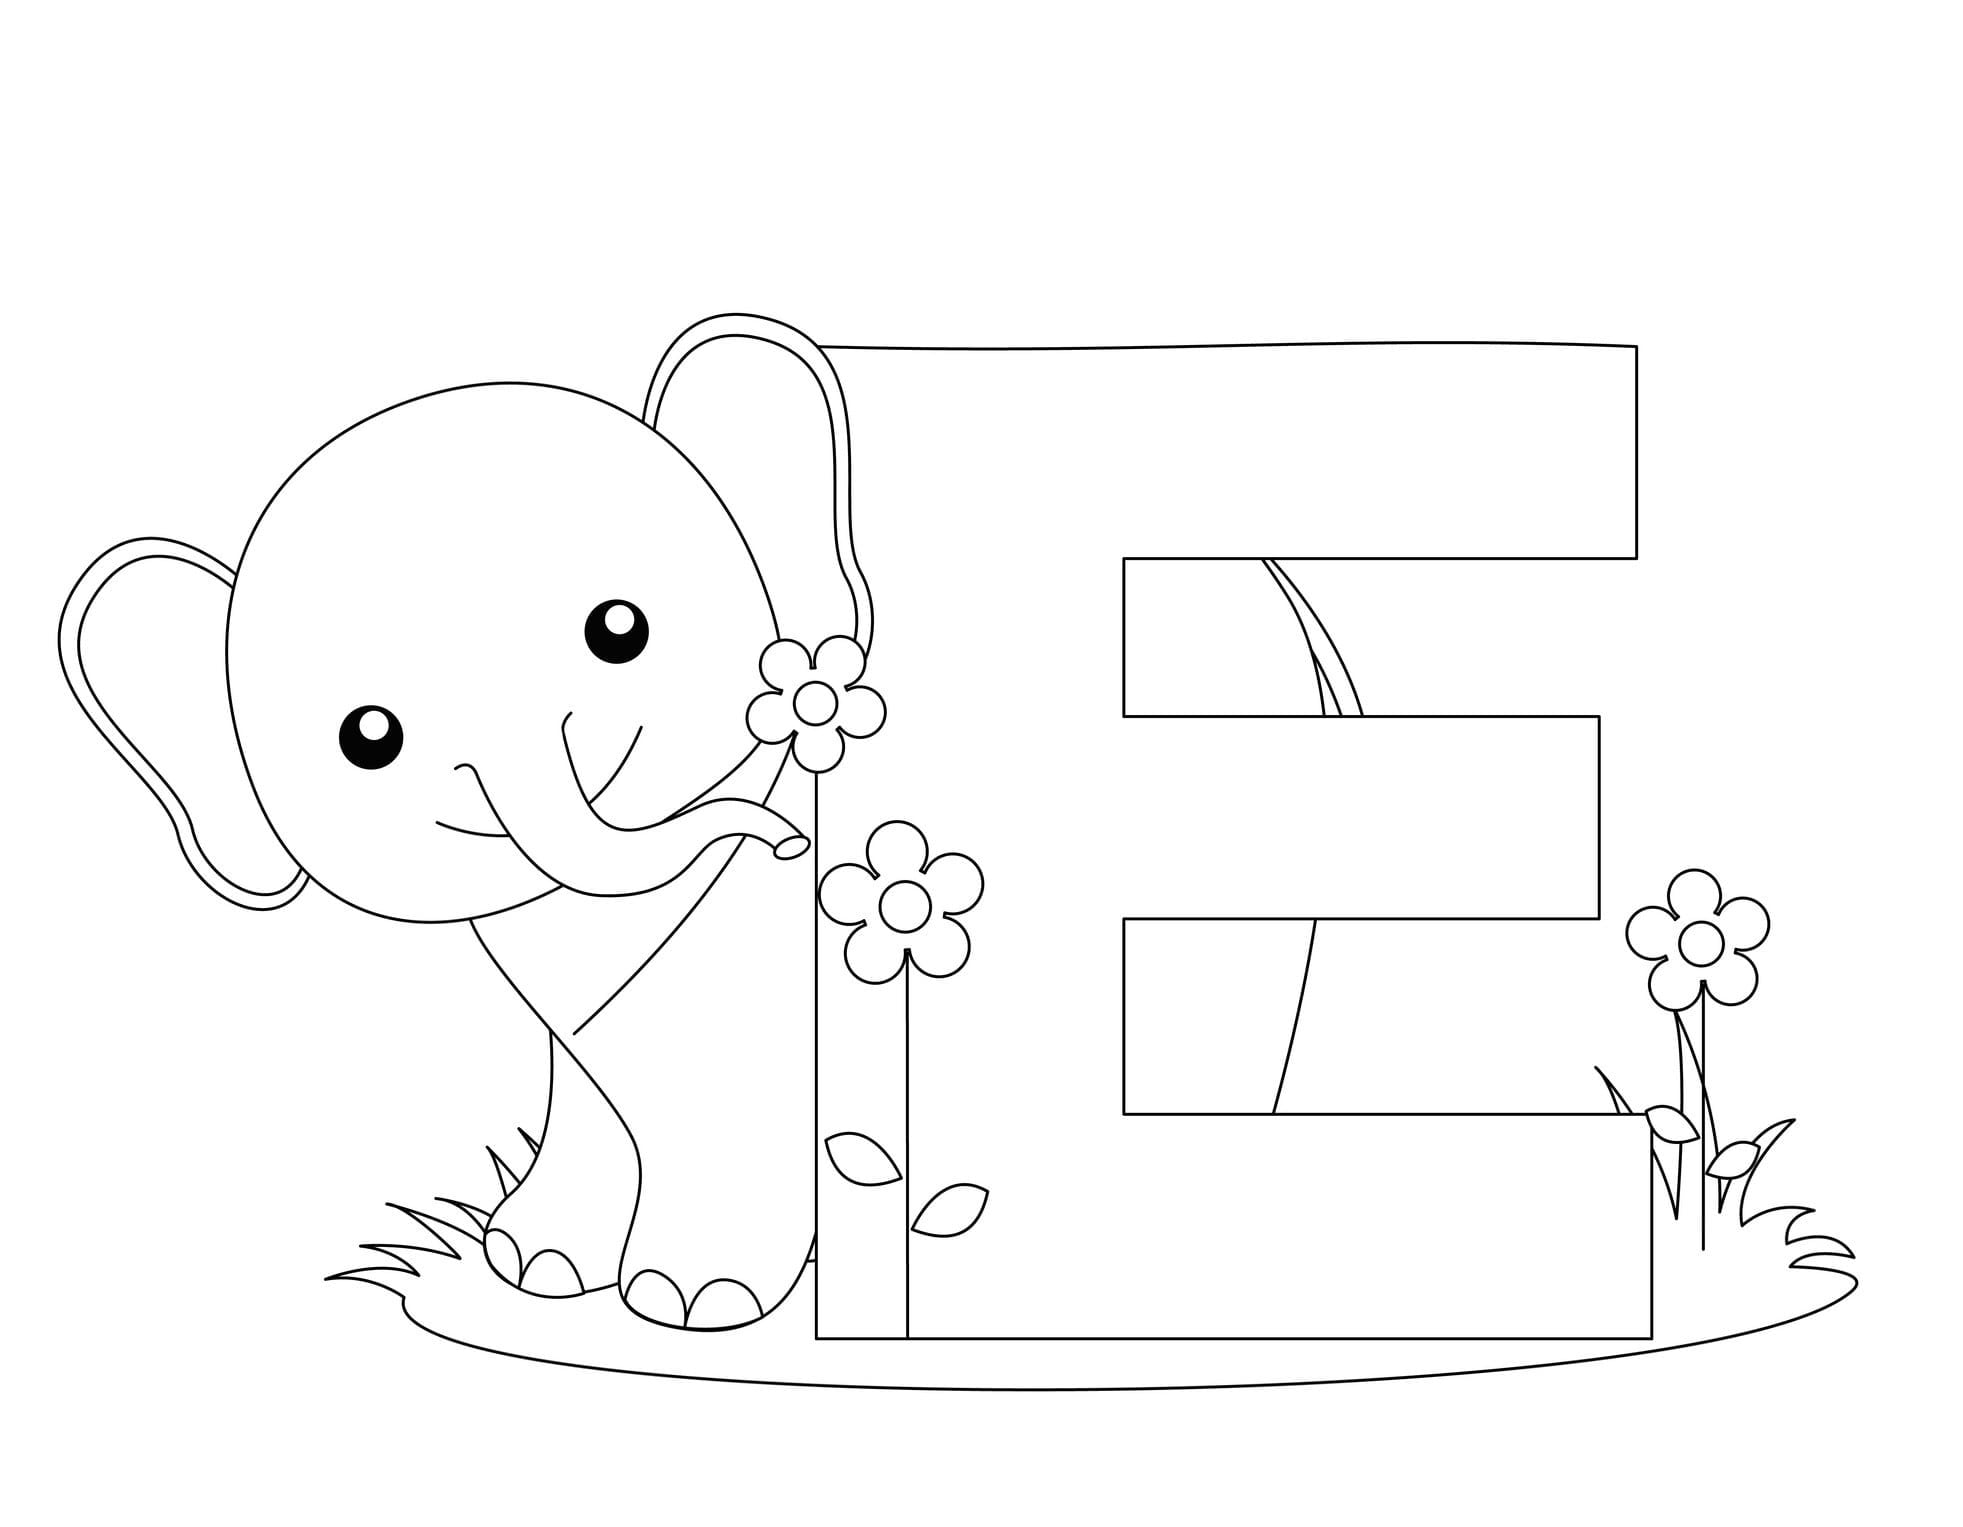 Coloring Book And Pages ~ Alphabet Coloring Pages Israel For